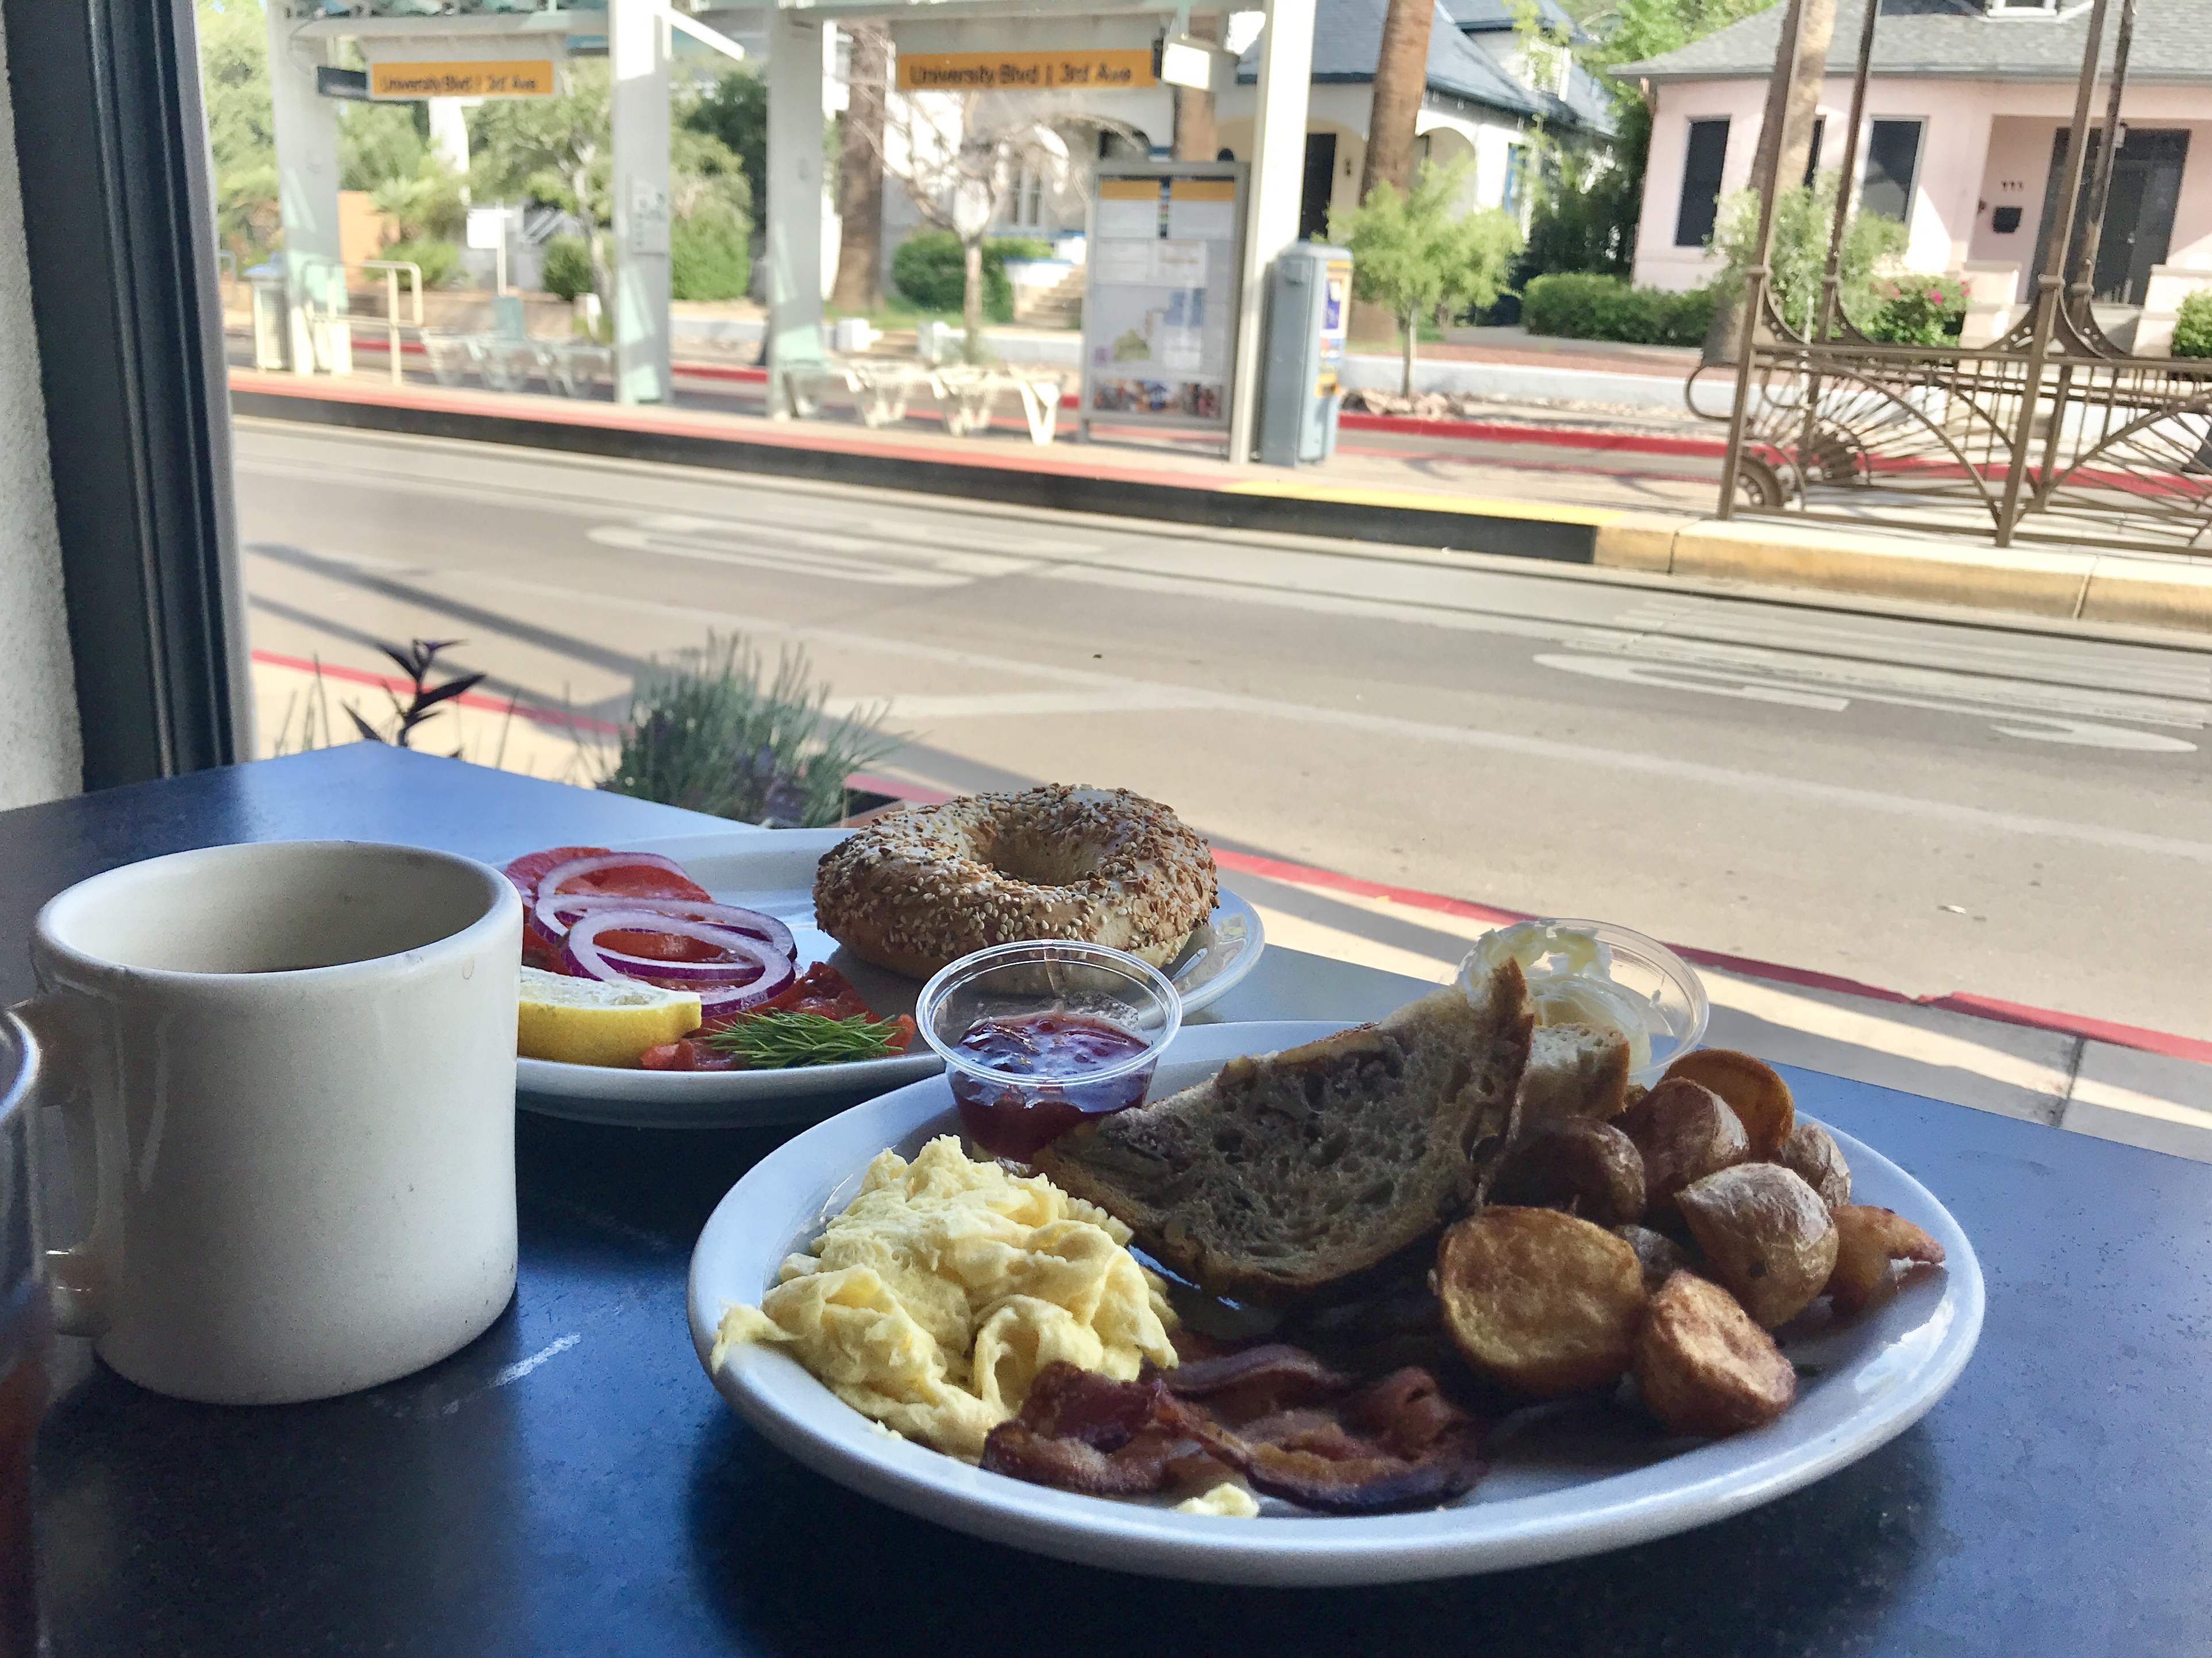 Eating breakfast at Time Market in Tucson, Arizona